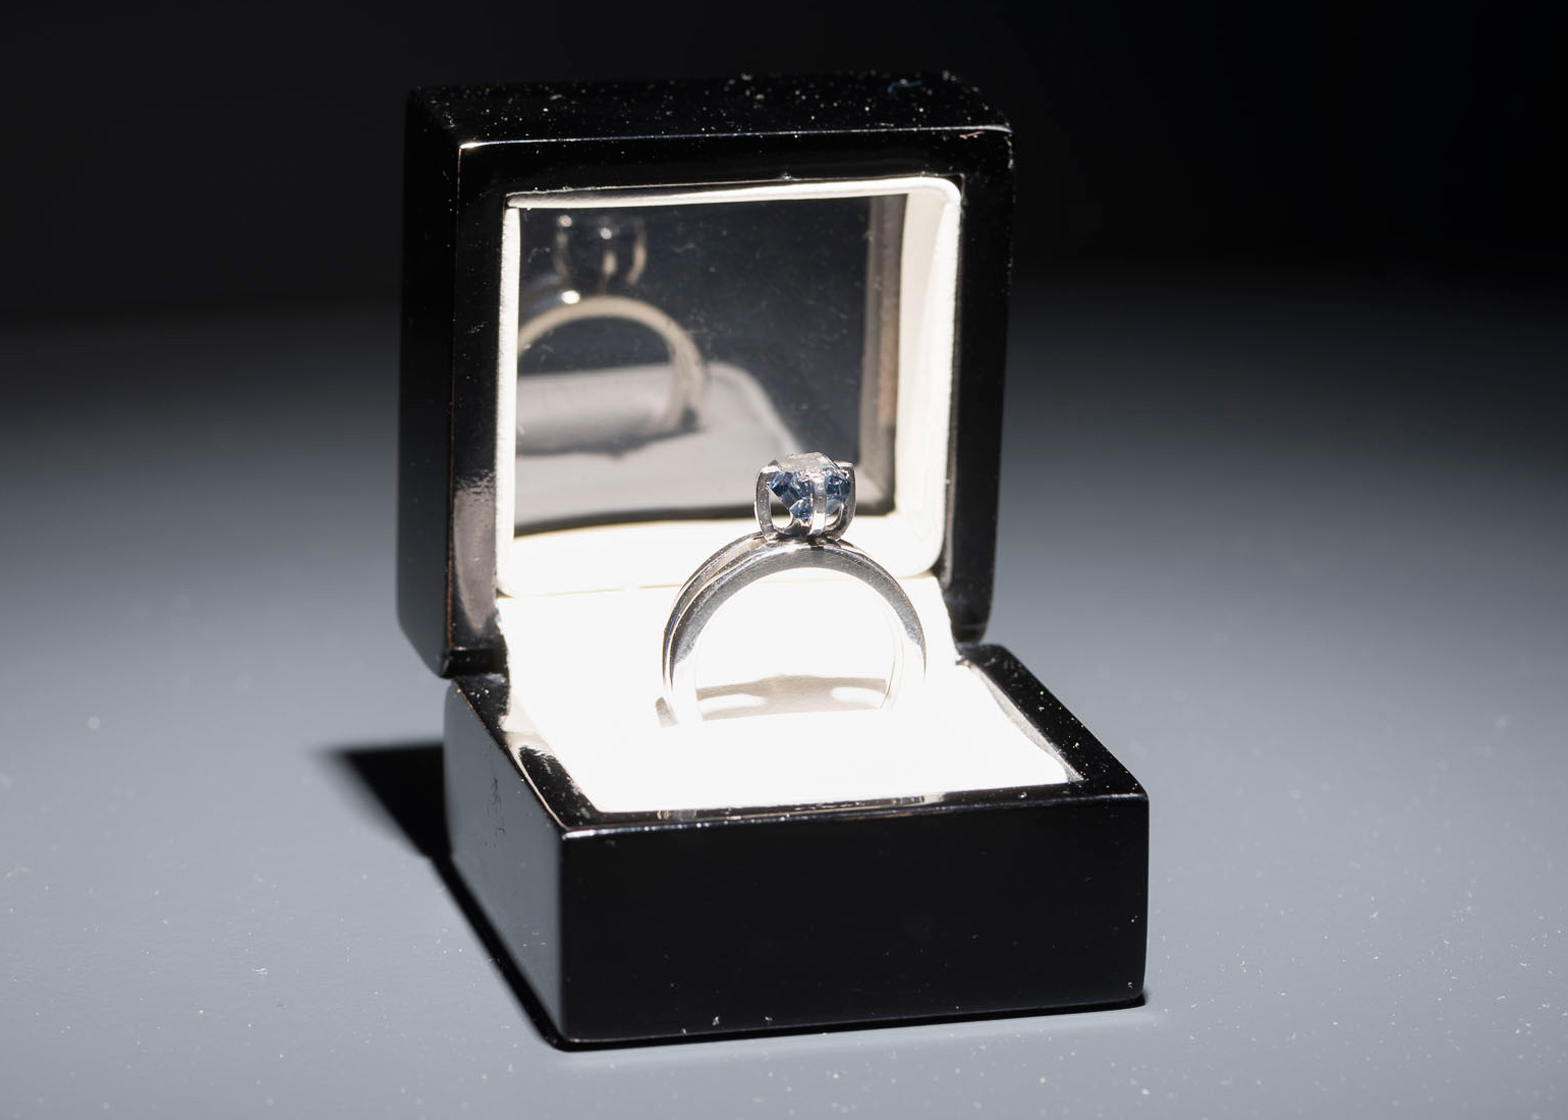 The Crazy, True Story of How Famed Architect Luis Barragán's Ashes Were Turned Into a Diamond